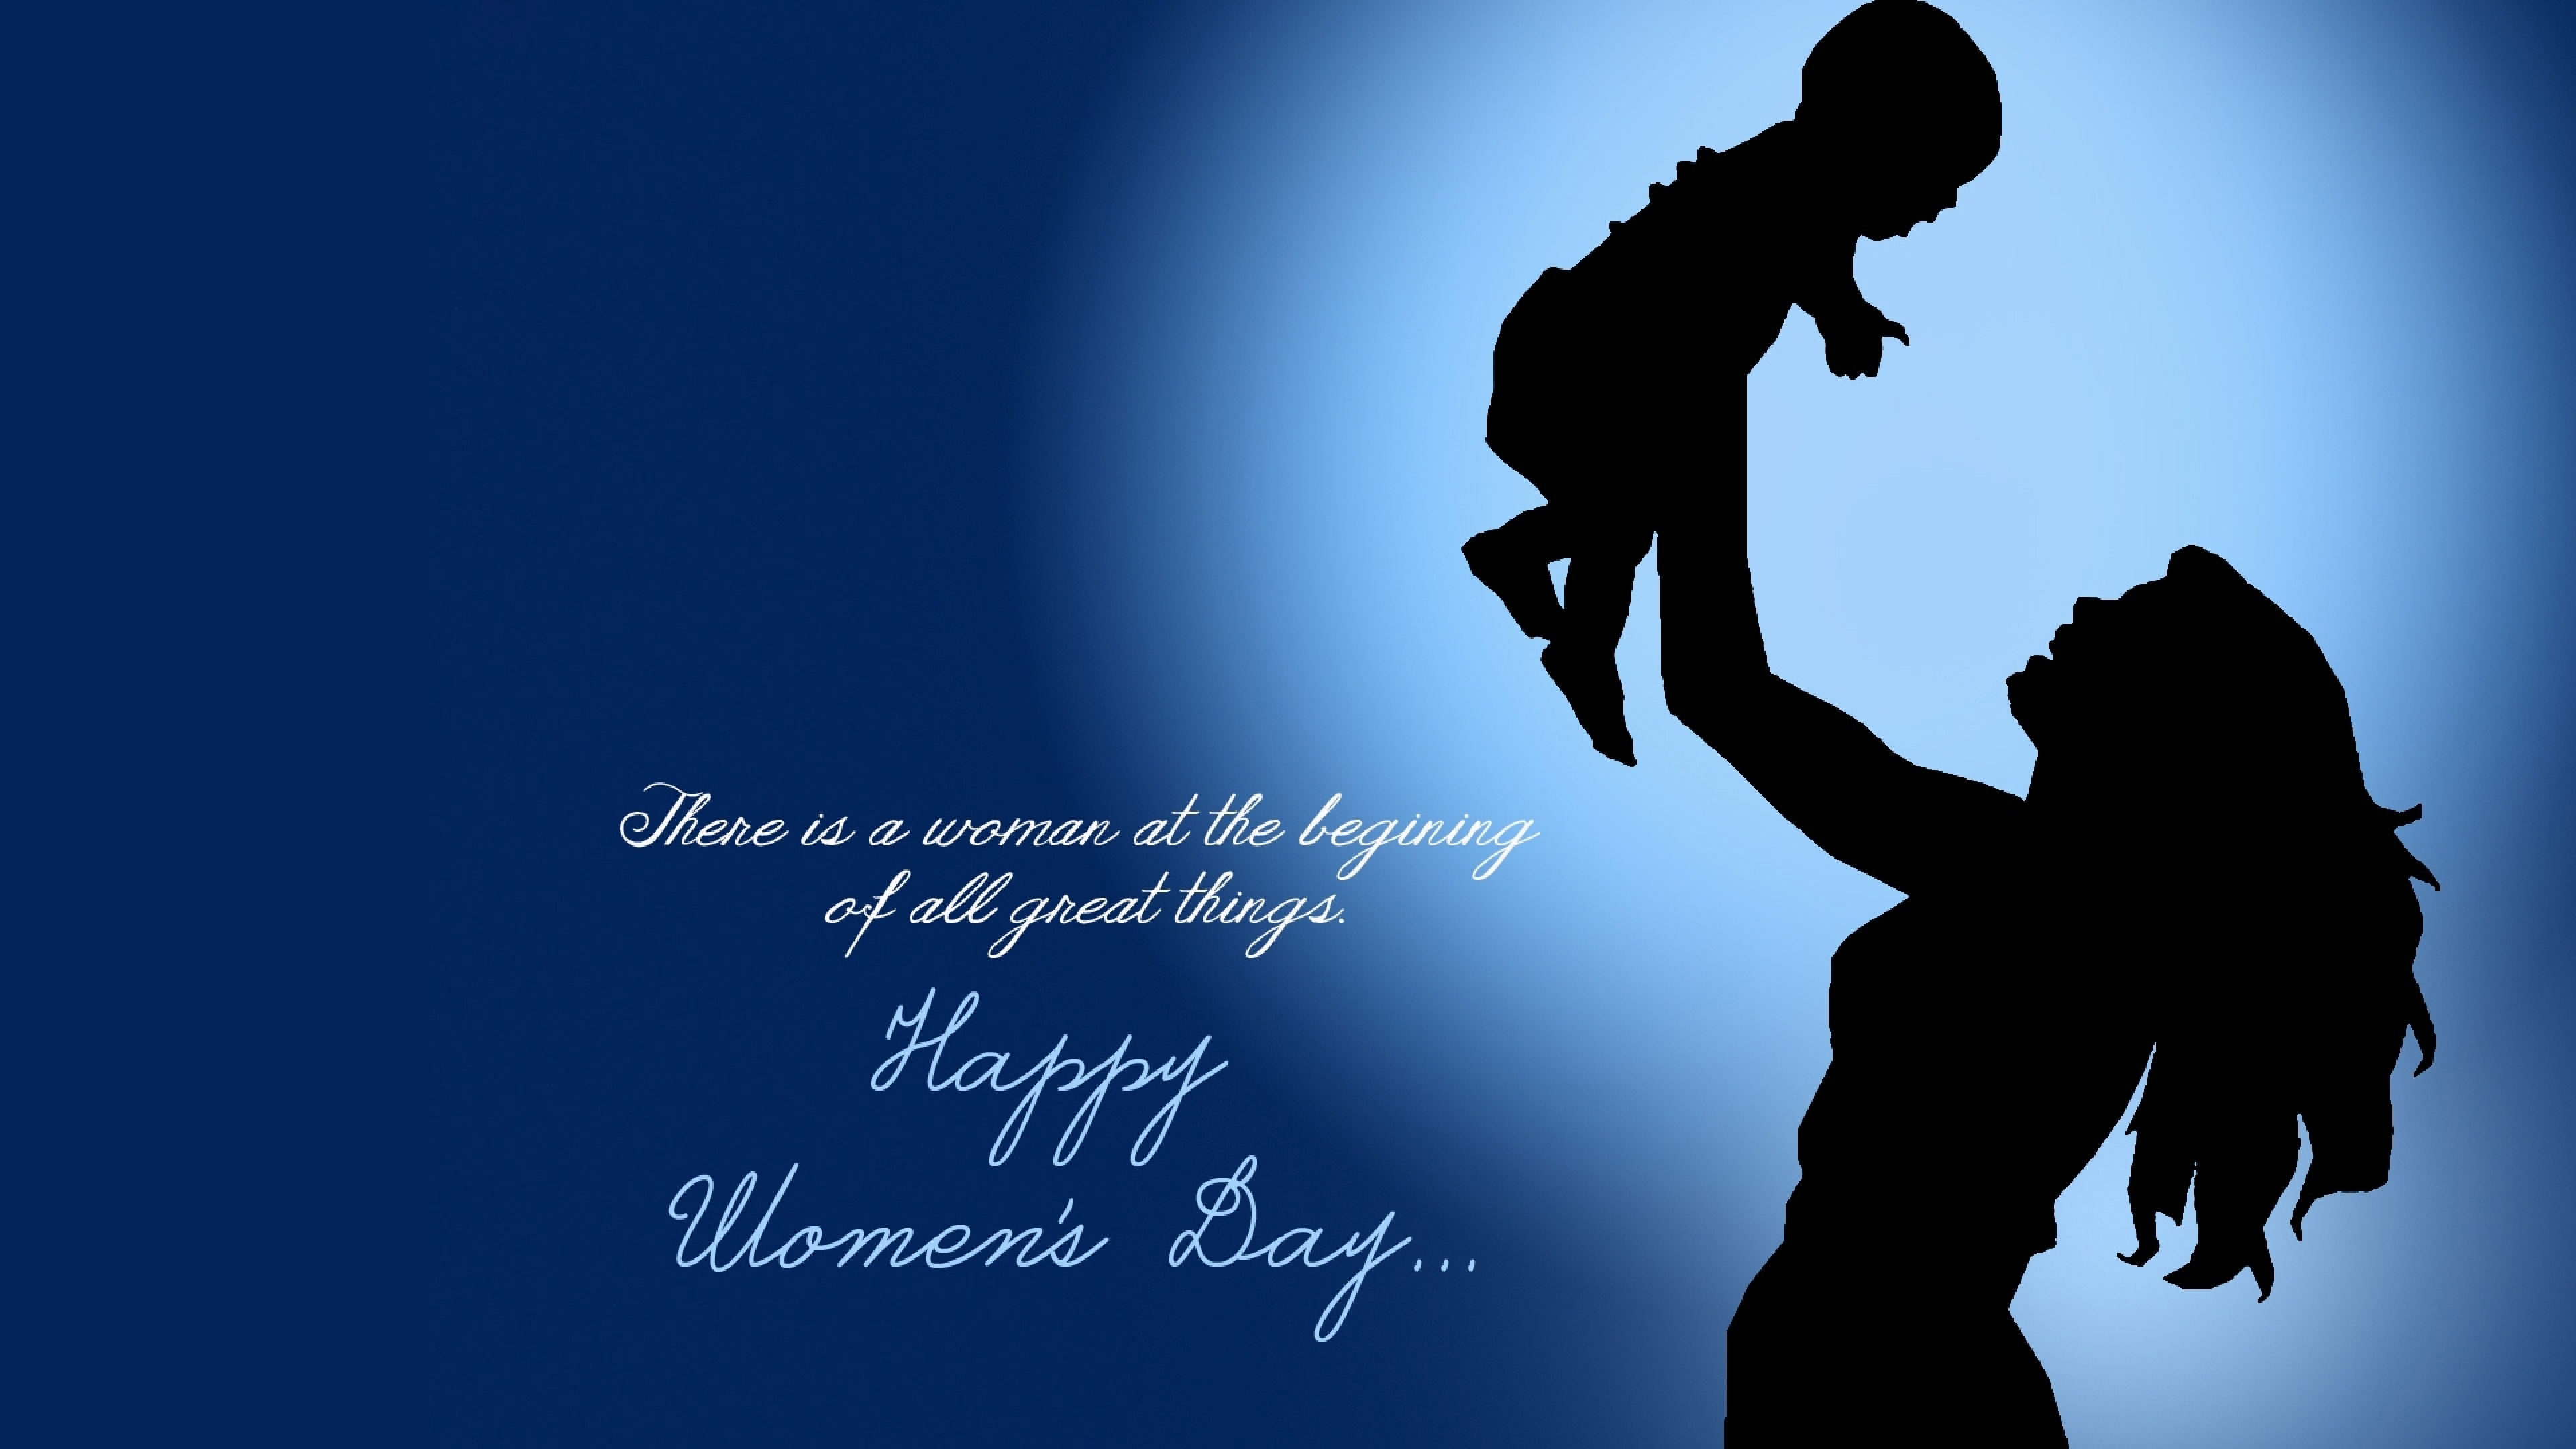 Happy-Womens-Day-Greetings-HD-Wallpapers-with-baby